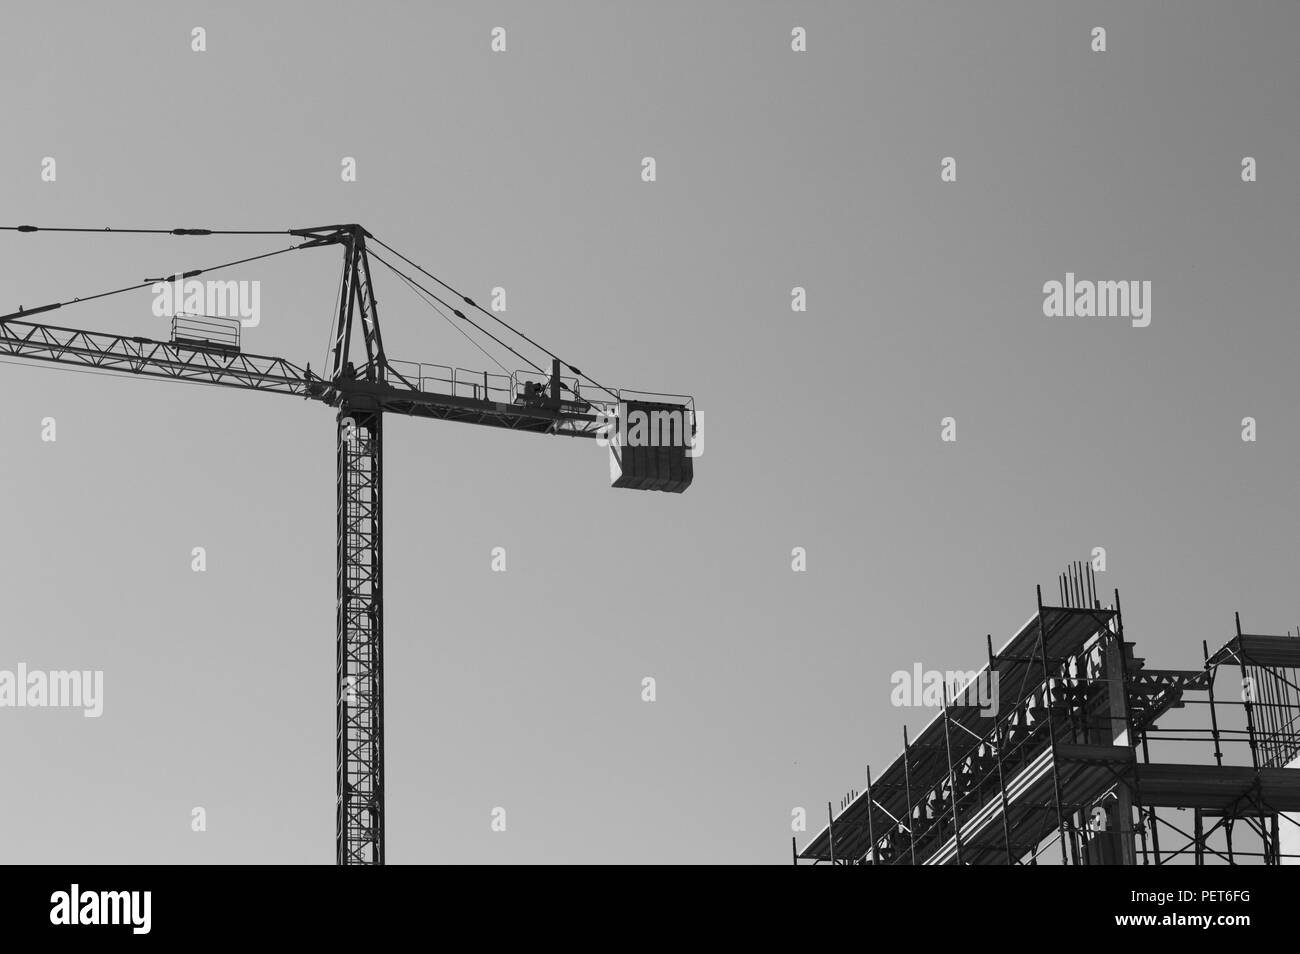 Tower crane - Davit in a construction site (Pesaro, Italy, Europe) - Stock Image